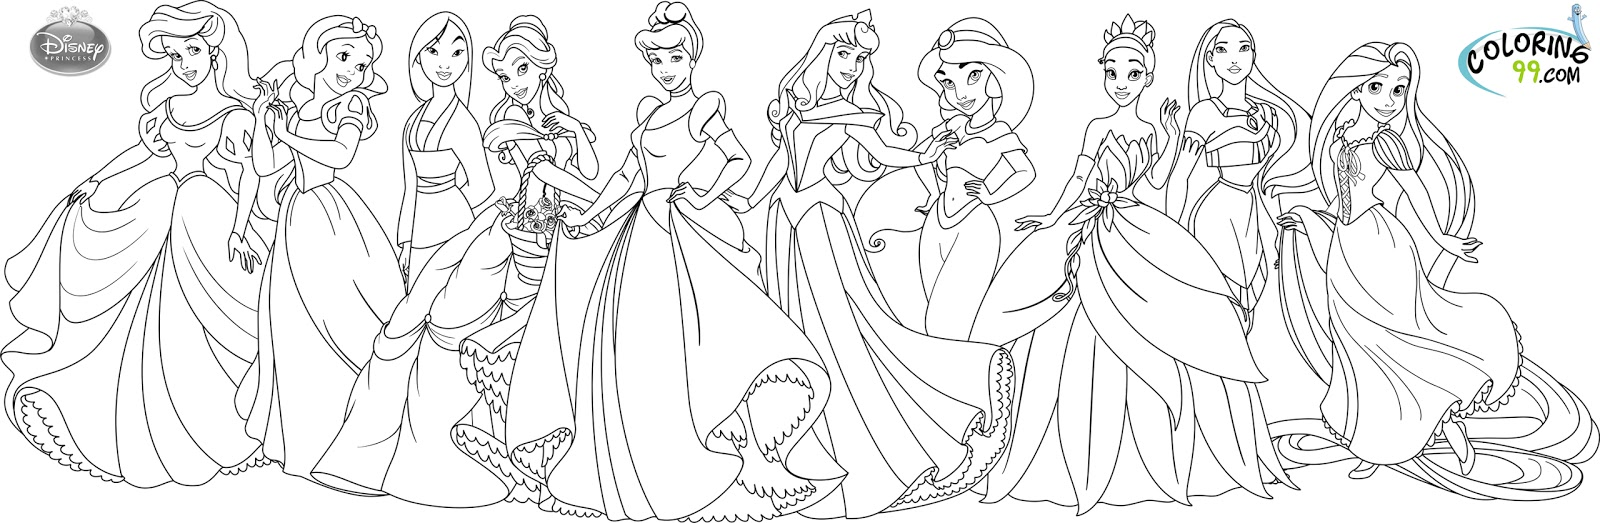 Disney Princesses Coloring Pages Disney Princess Coloring Pages  Minister Coloring